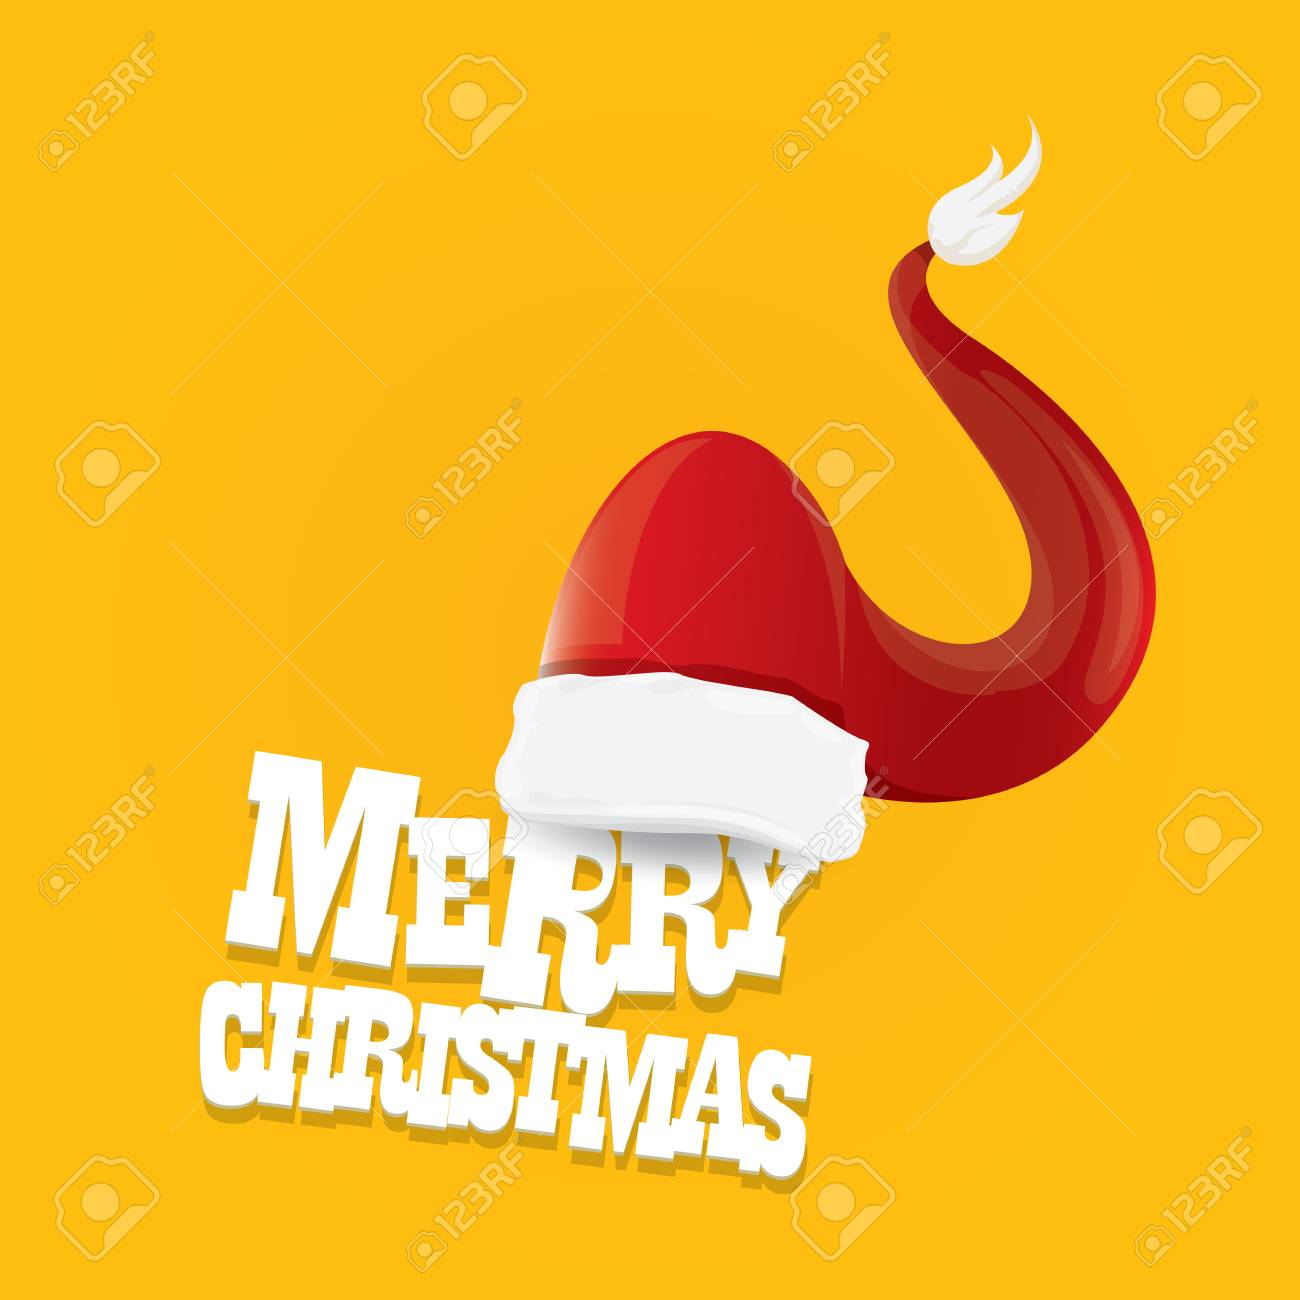 Vector Red Santa Hat On Orange Background With Greeting Text